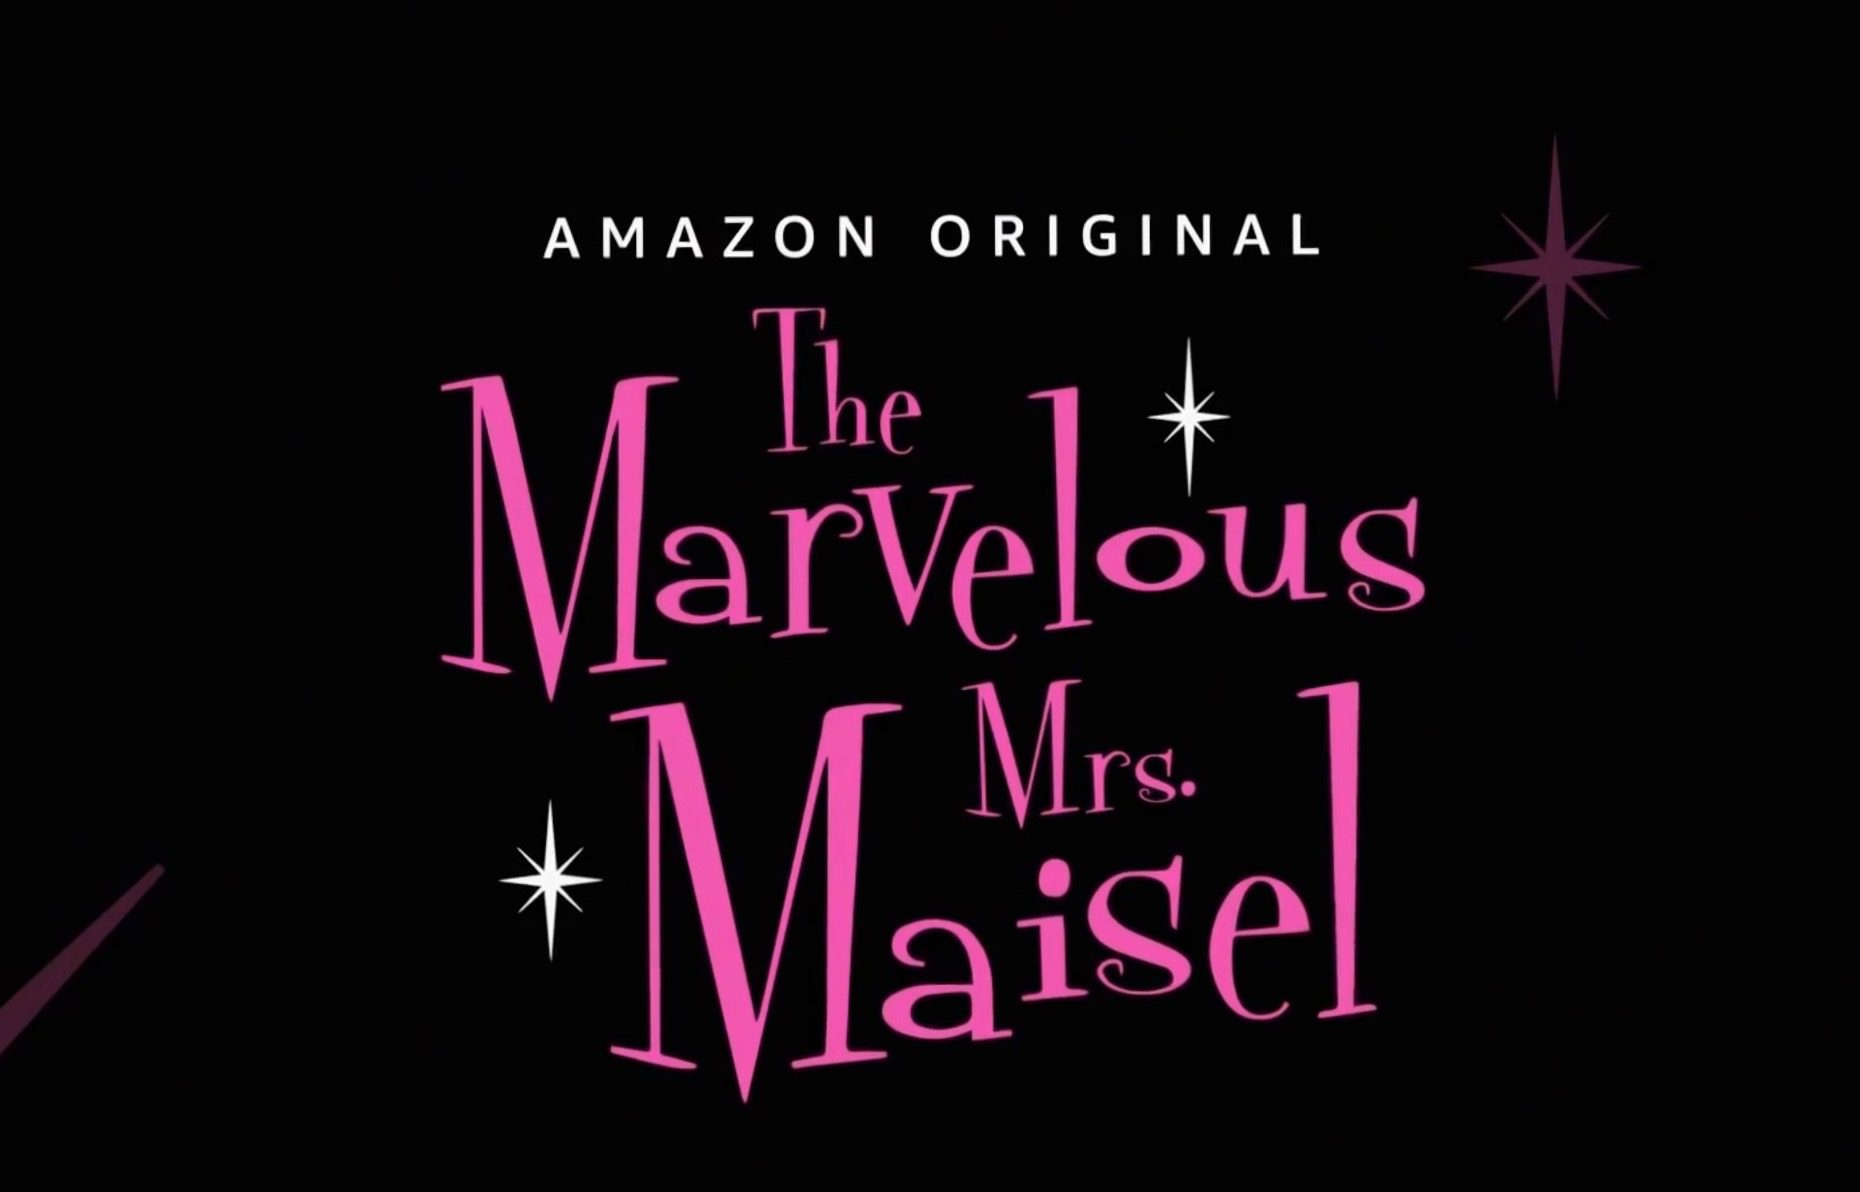 Amazon Releases New Trailer for Season 3 of 'The Marvelous Mrs. Maisel'